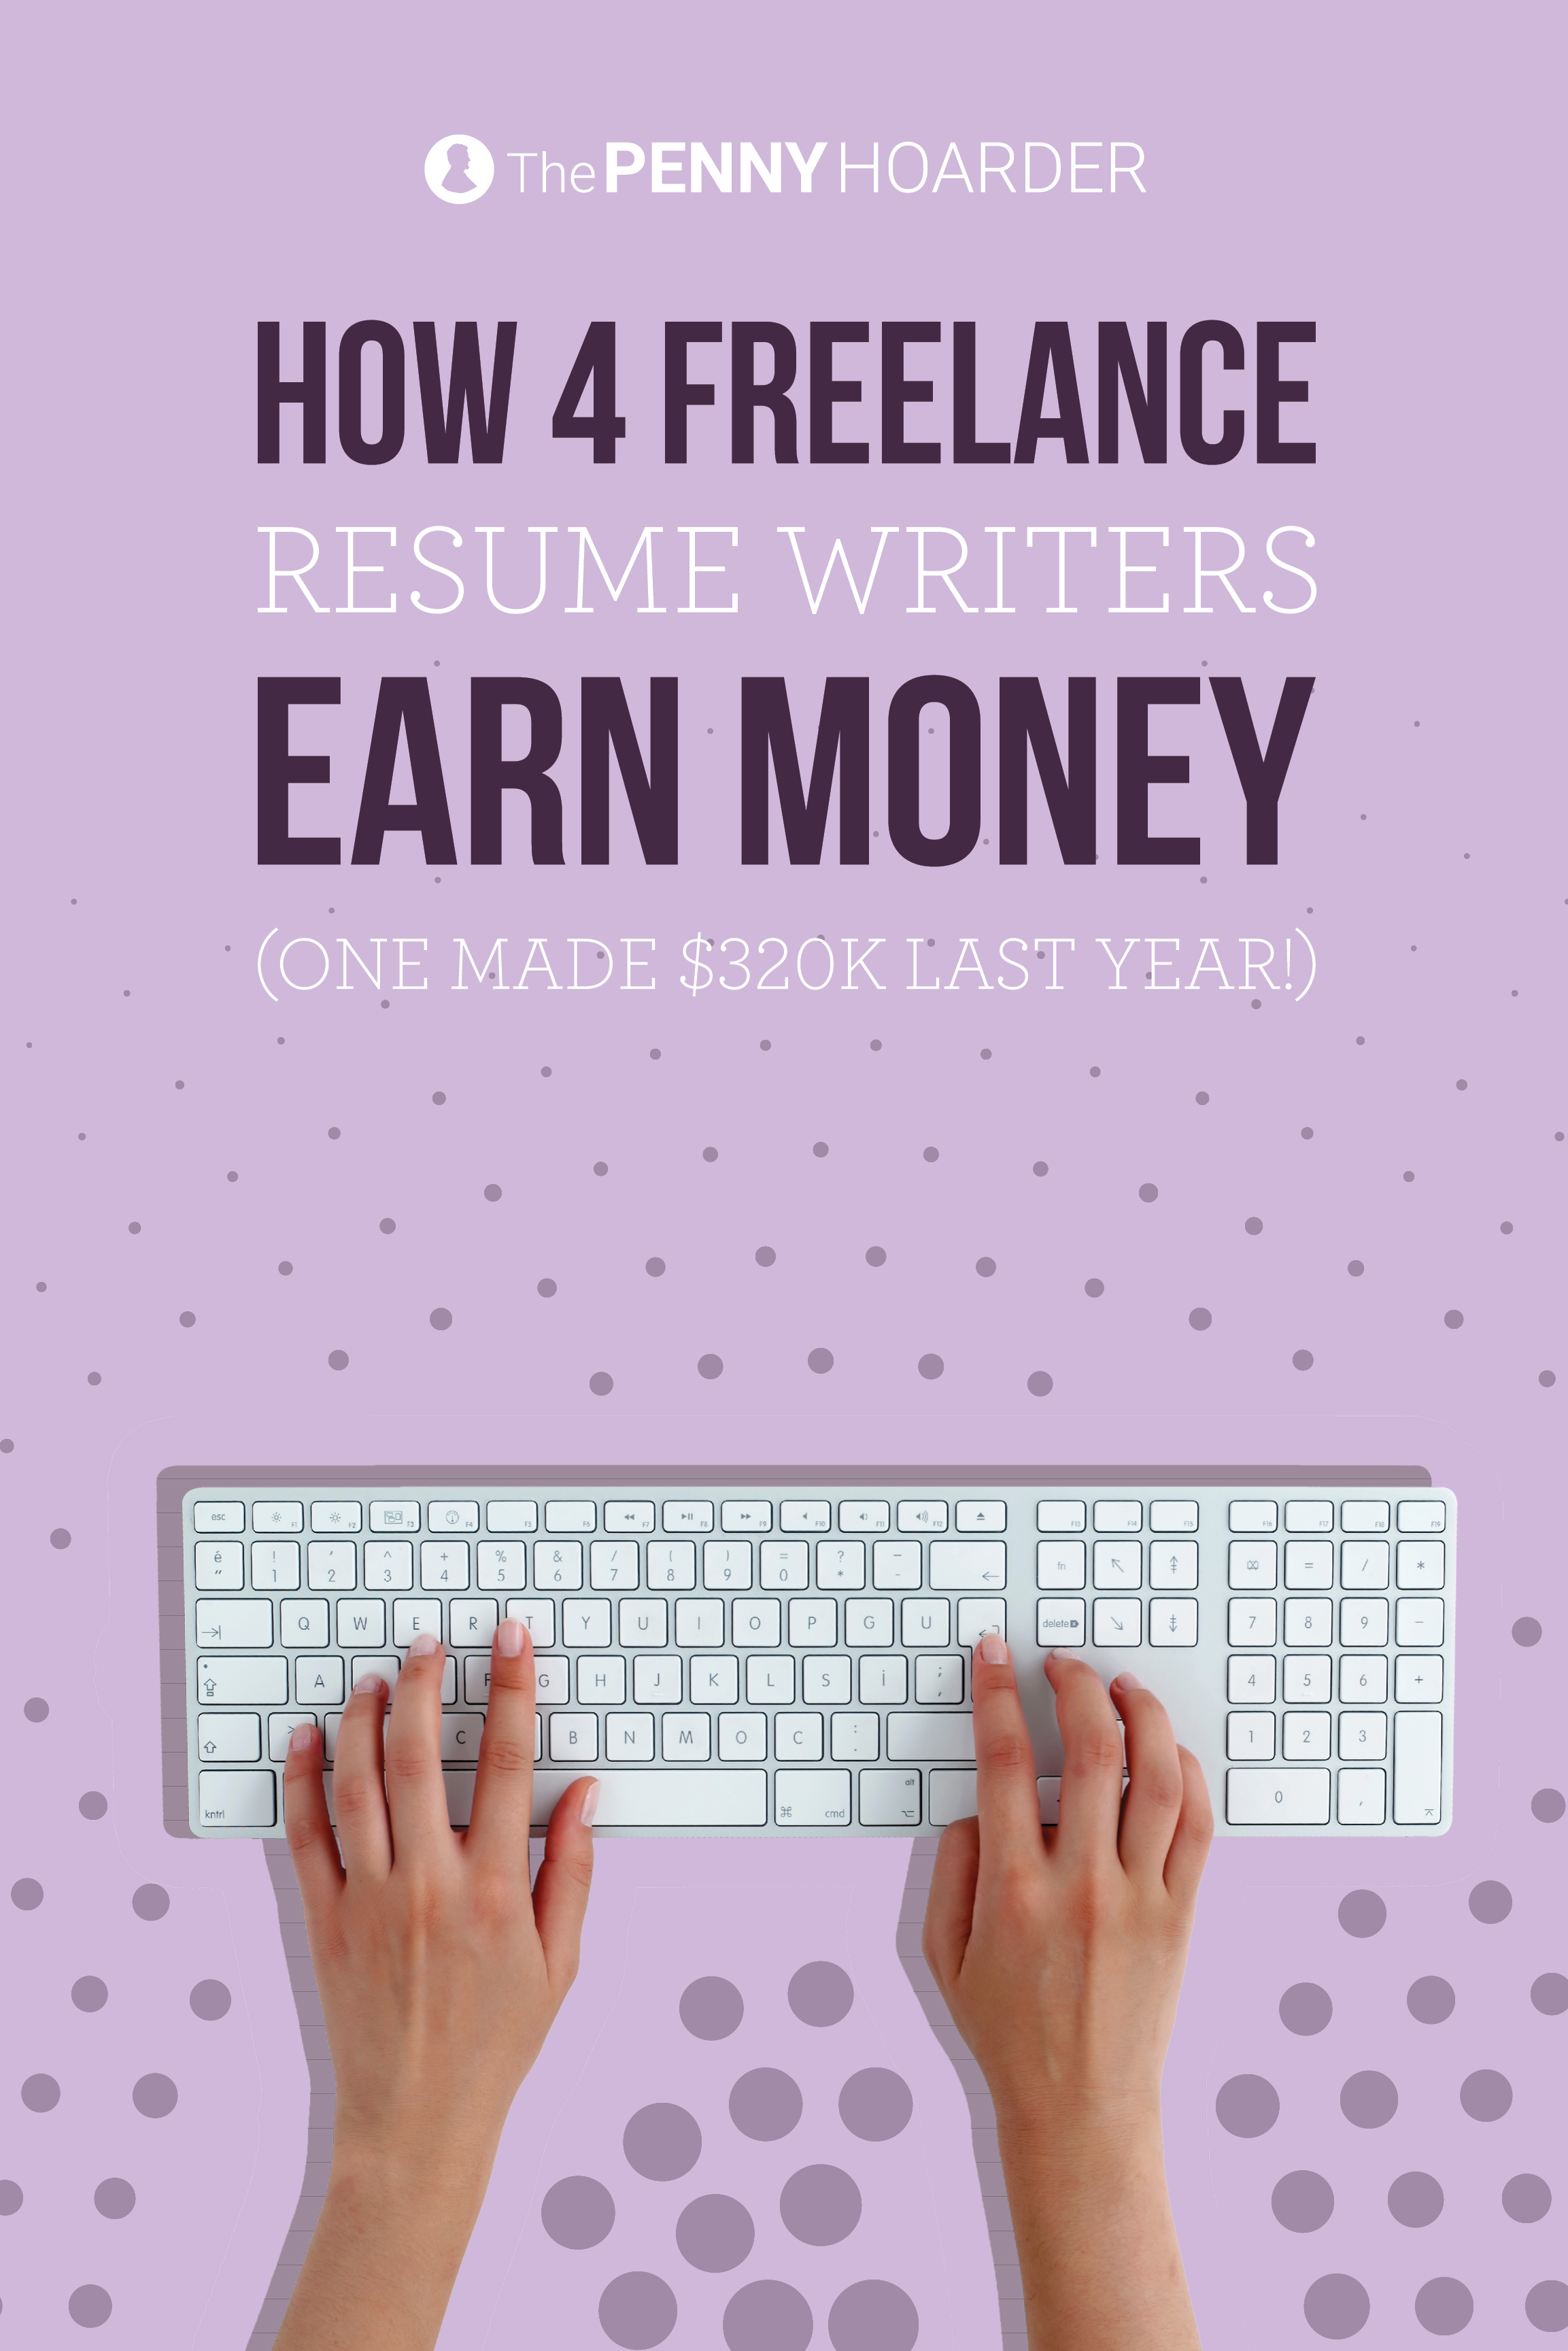 Resume Writer Jobs How 4 Freelance Resume Writers Earn Money One Made $320K Last